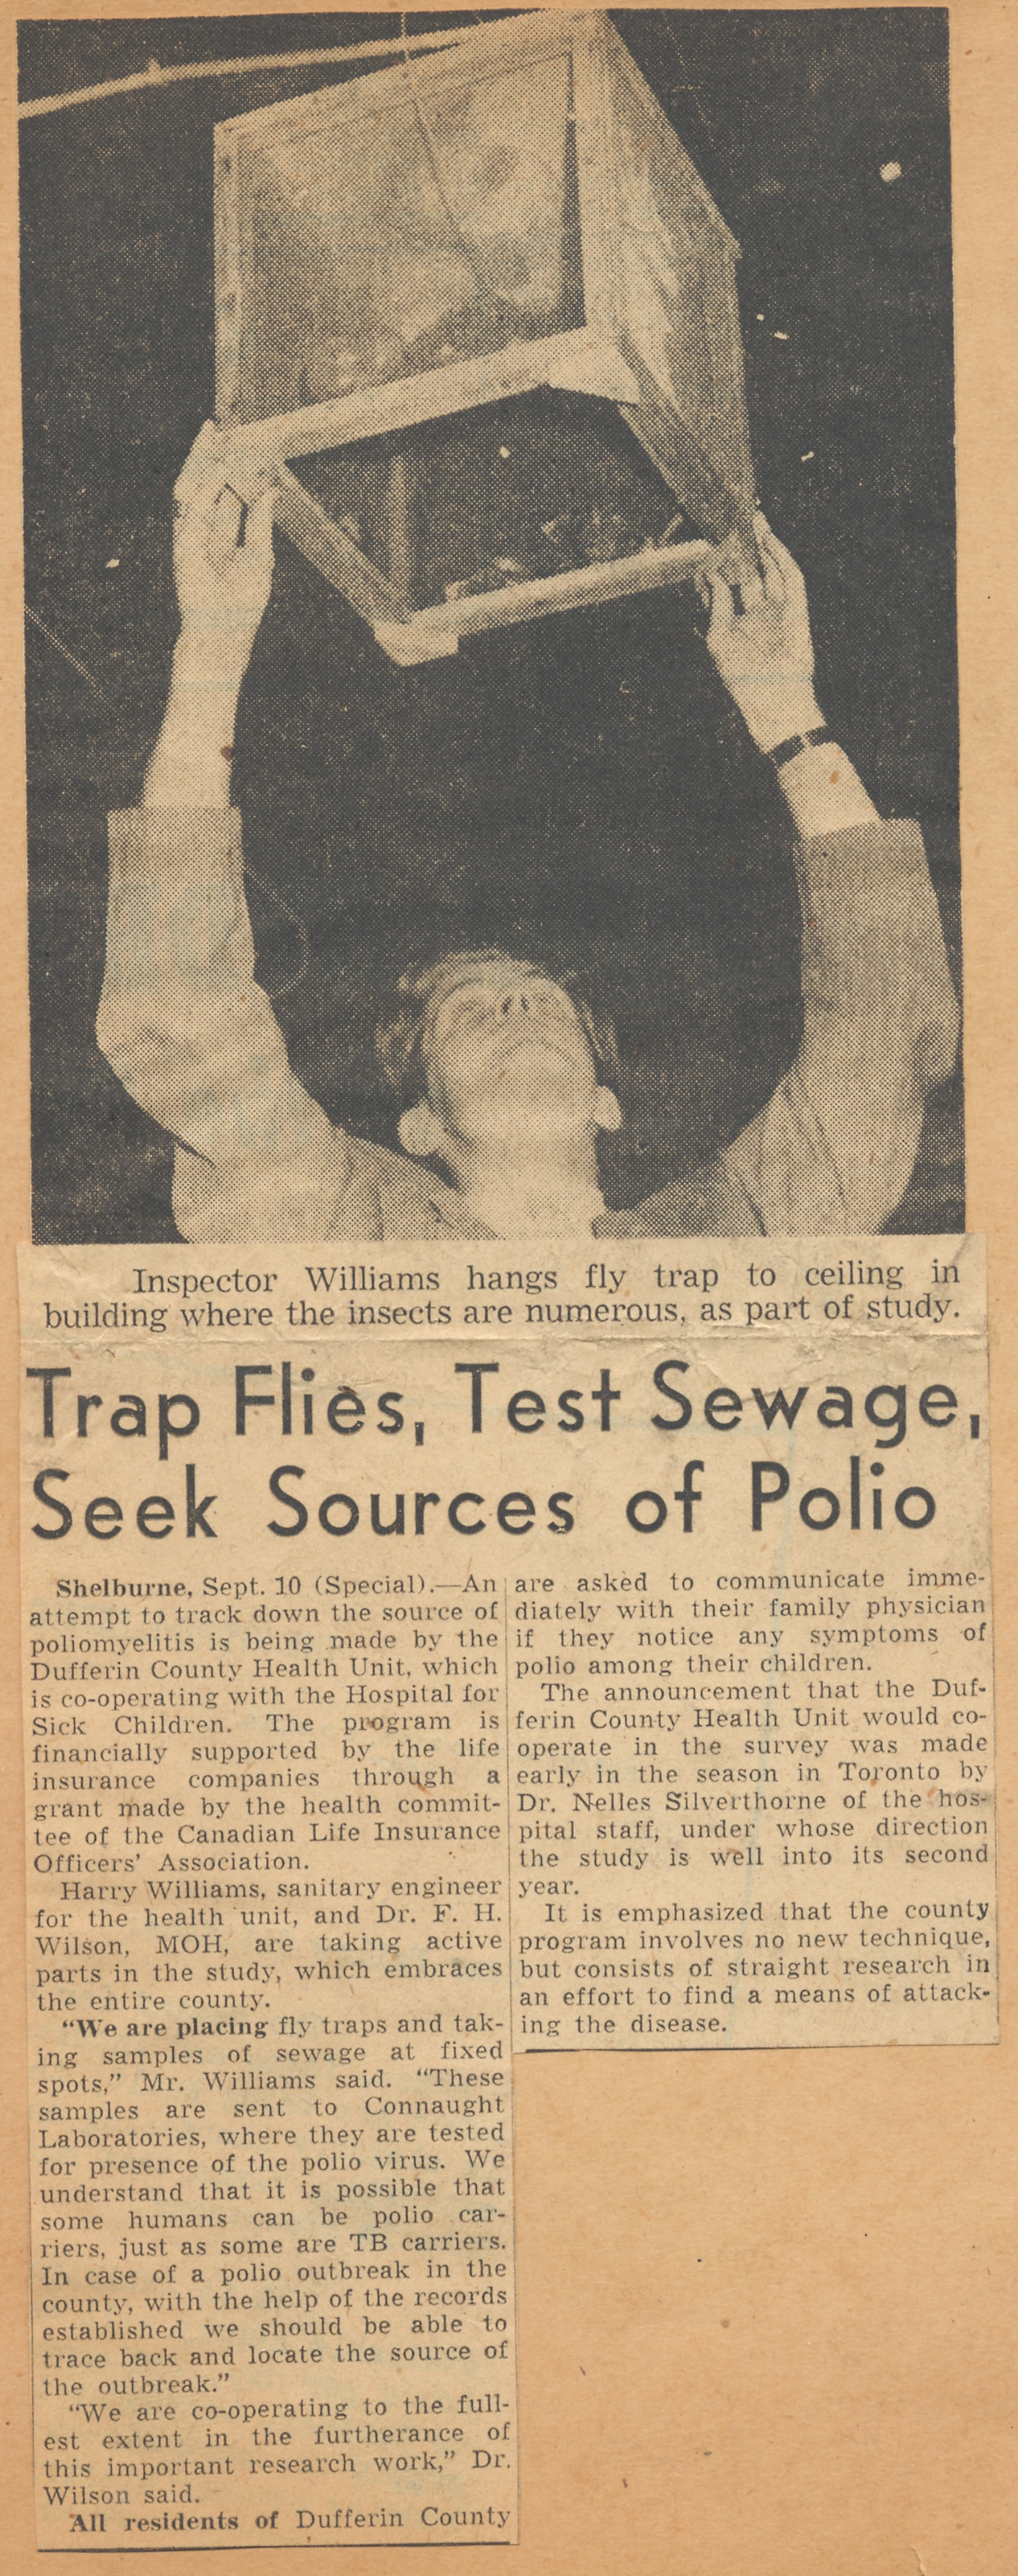 Globe and Mail newspaper clipping from Sept. 11, 1948, describing Dr. Rhodes' polio research, which was focused on tracing the poliovirus in sewage water and possibly in flies. This research was in collaboration with the Hospital for Sick Children and funded by the Canadian Life Insurance Officers Association